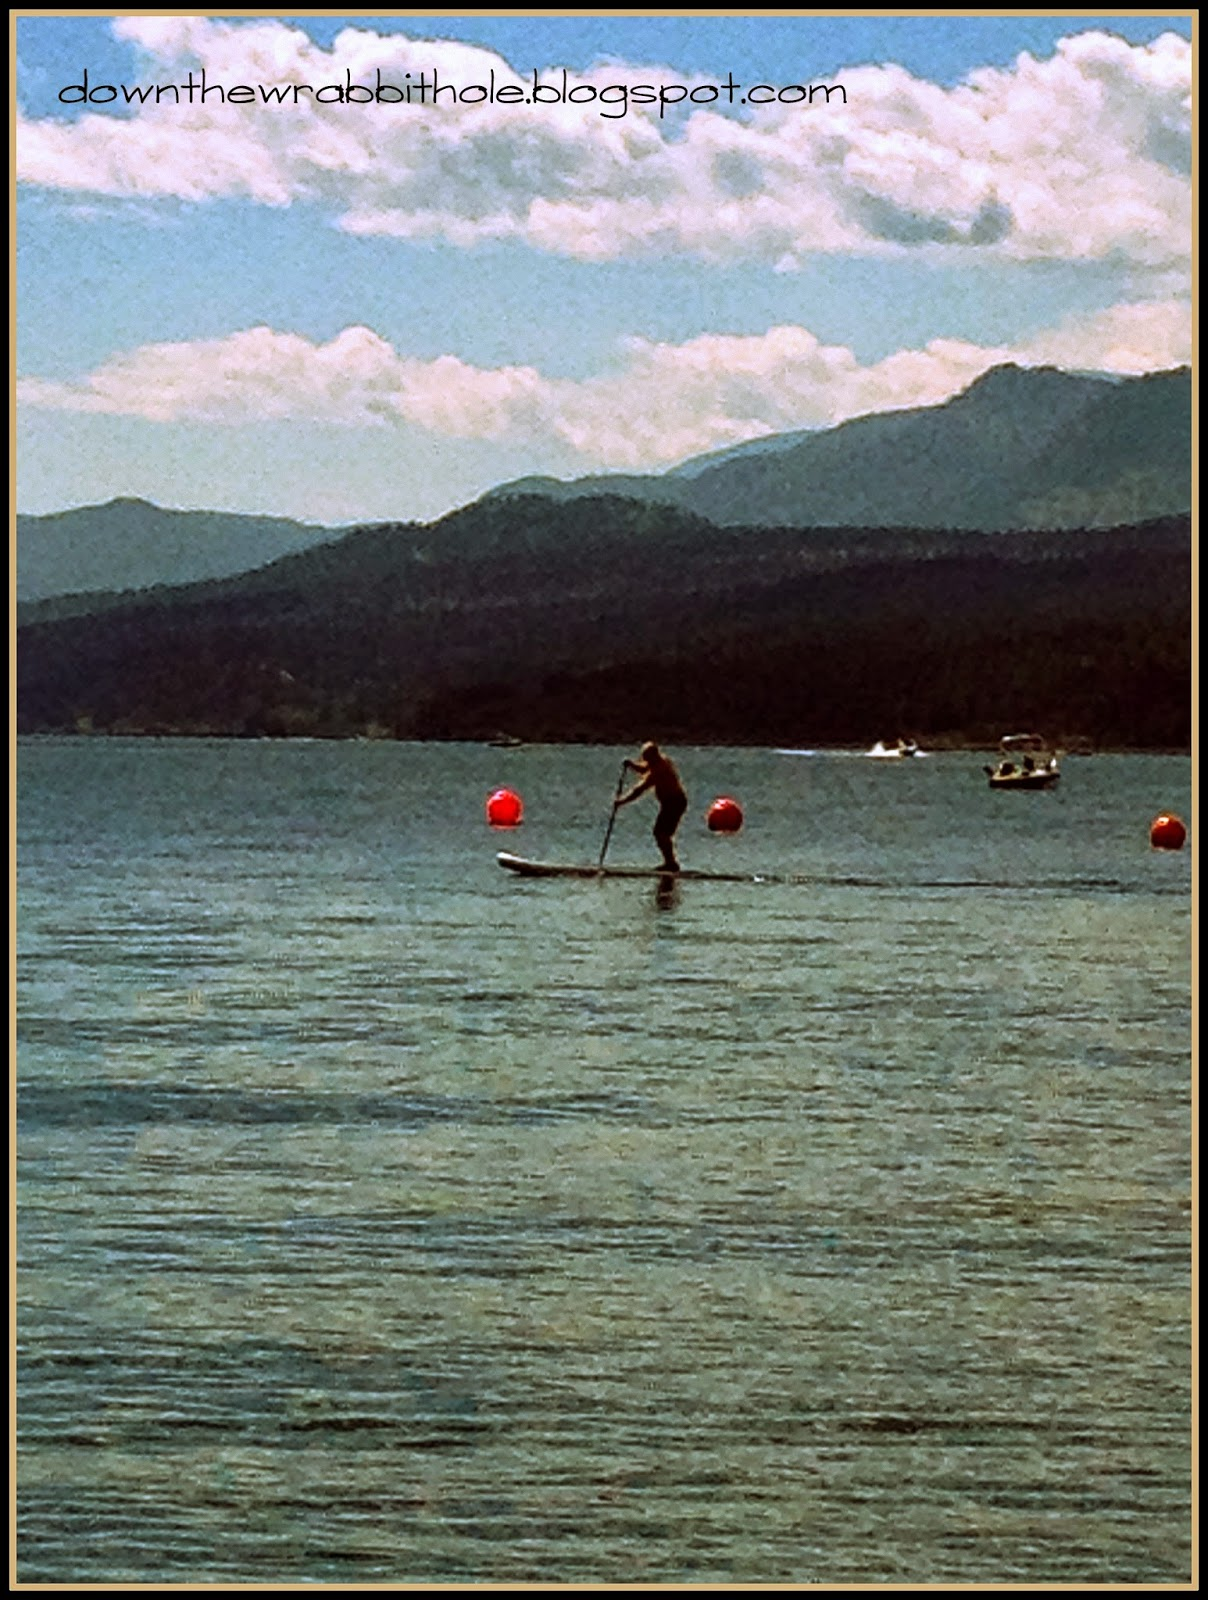 foam vs inflatable stand up paddle board, inflatable SUP, paddle boarding in Invermere